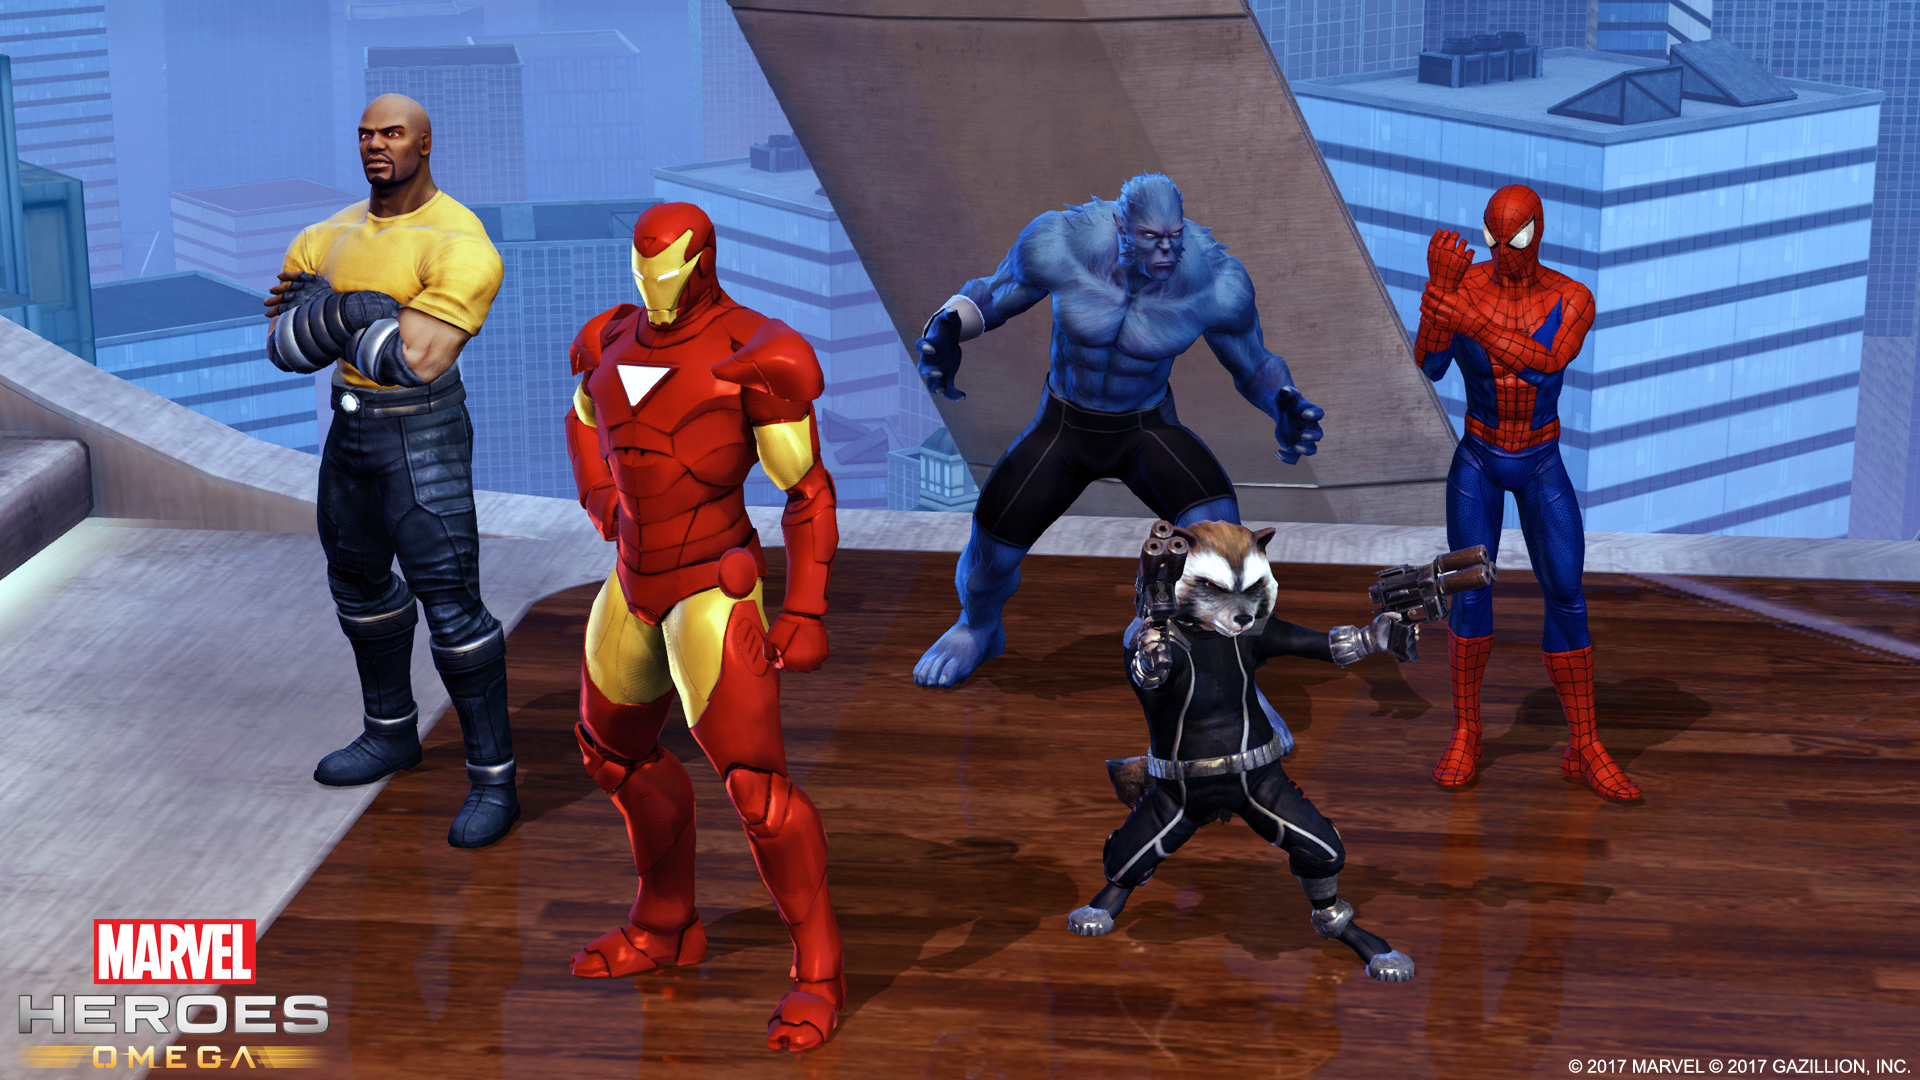 Marvel Heroes Omega hitting Xbox One at the end of the month